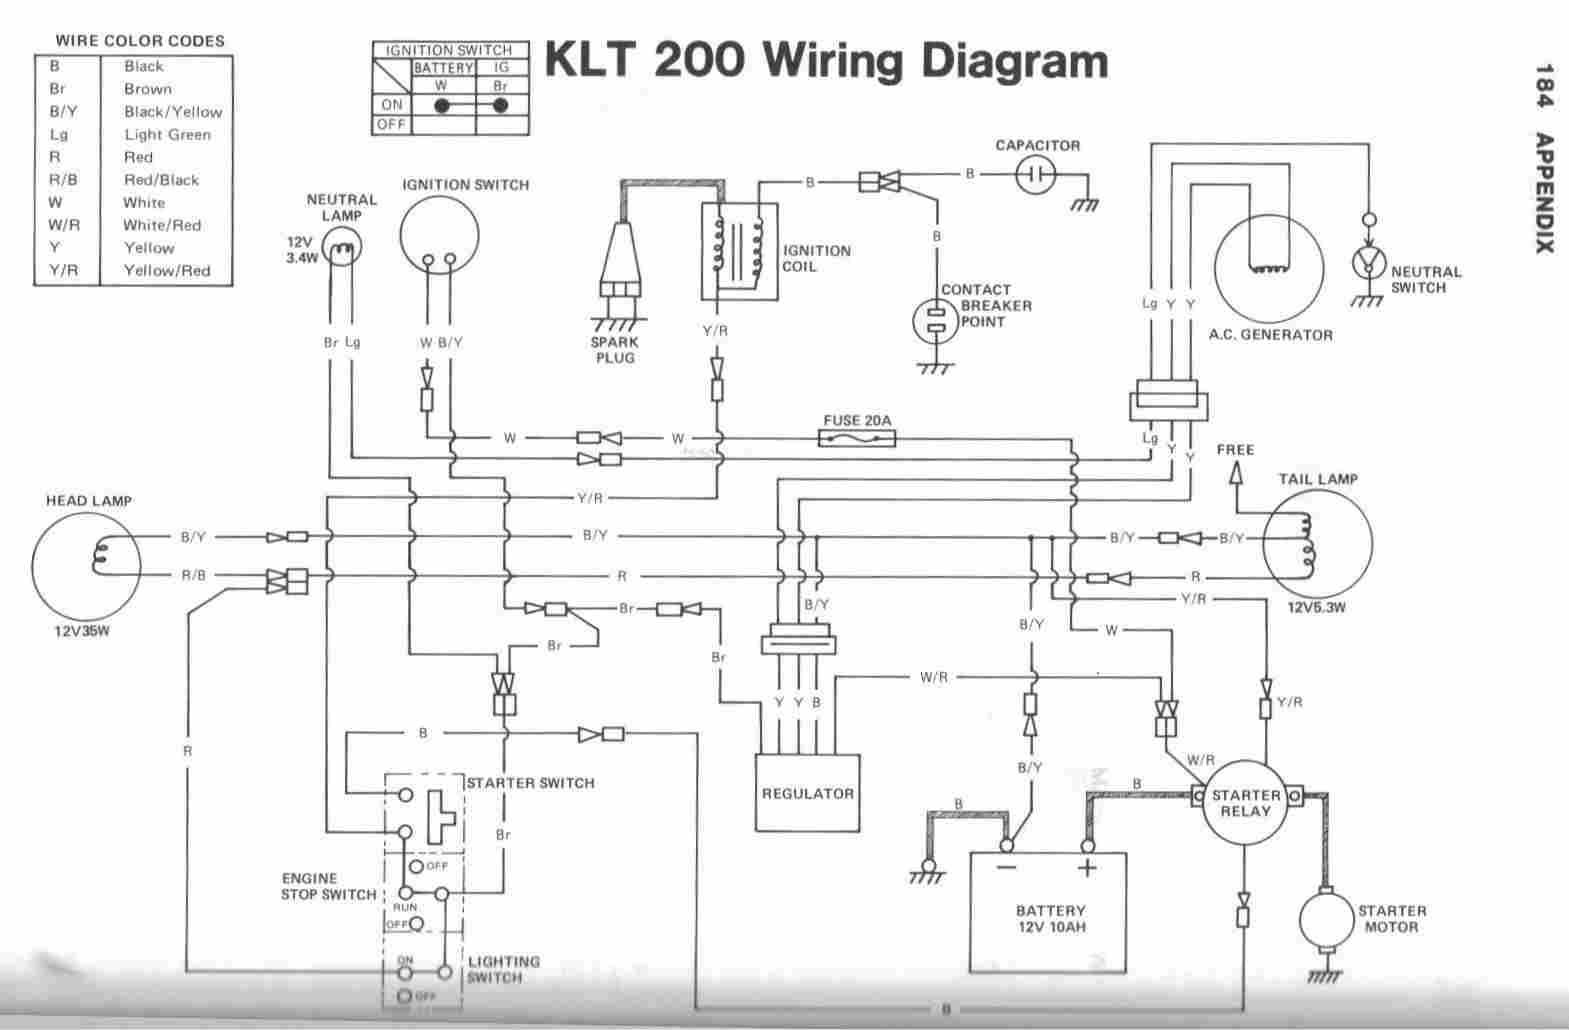 residential electrical wiring diagrams pdf easy routing cool ideas electrical